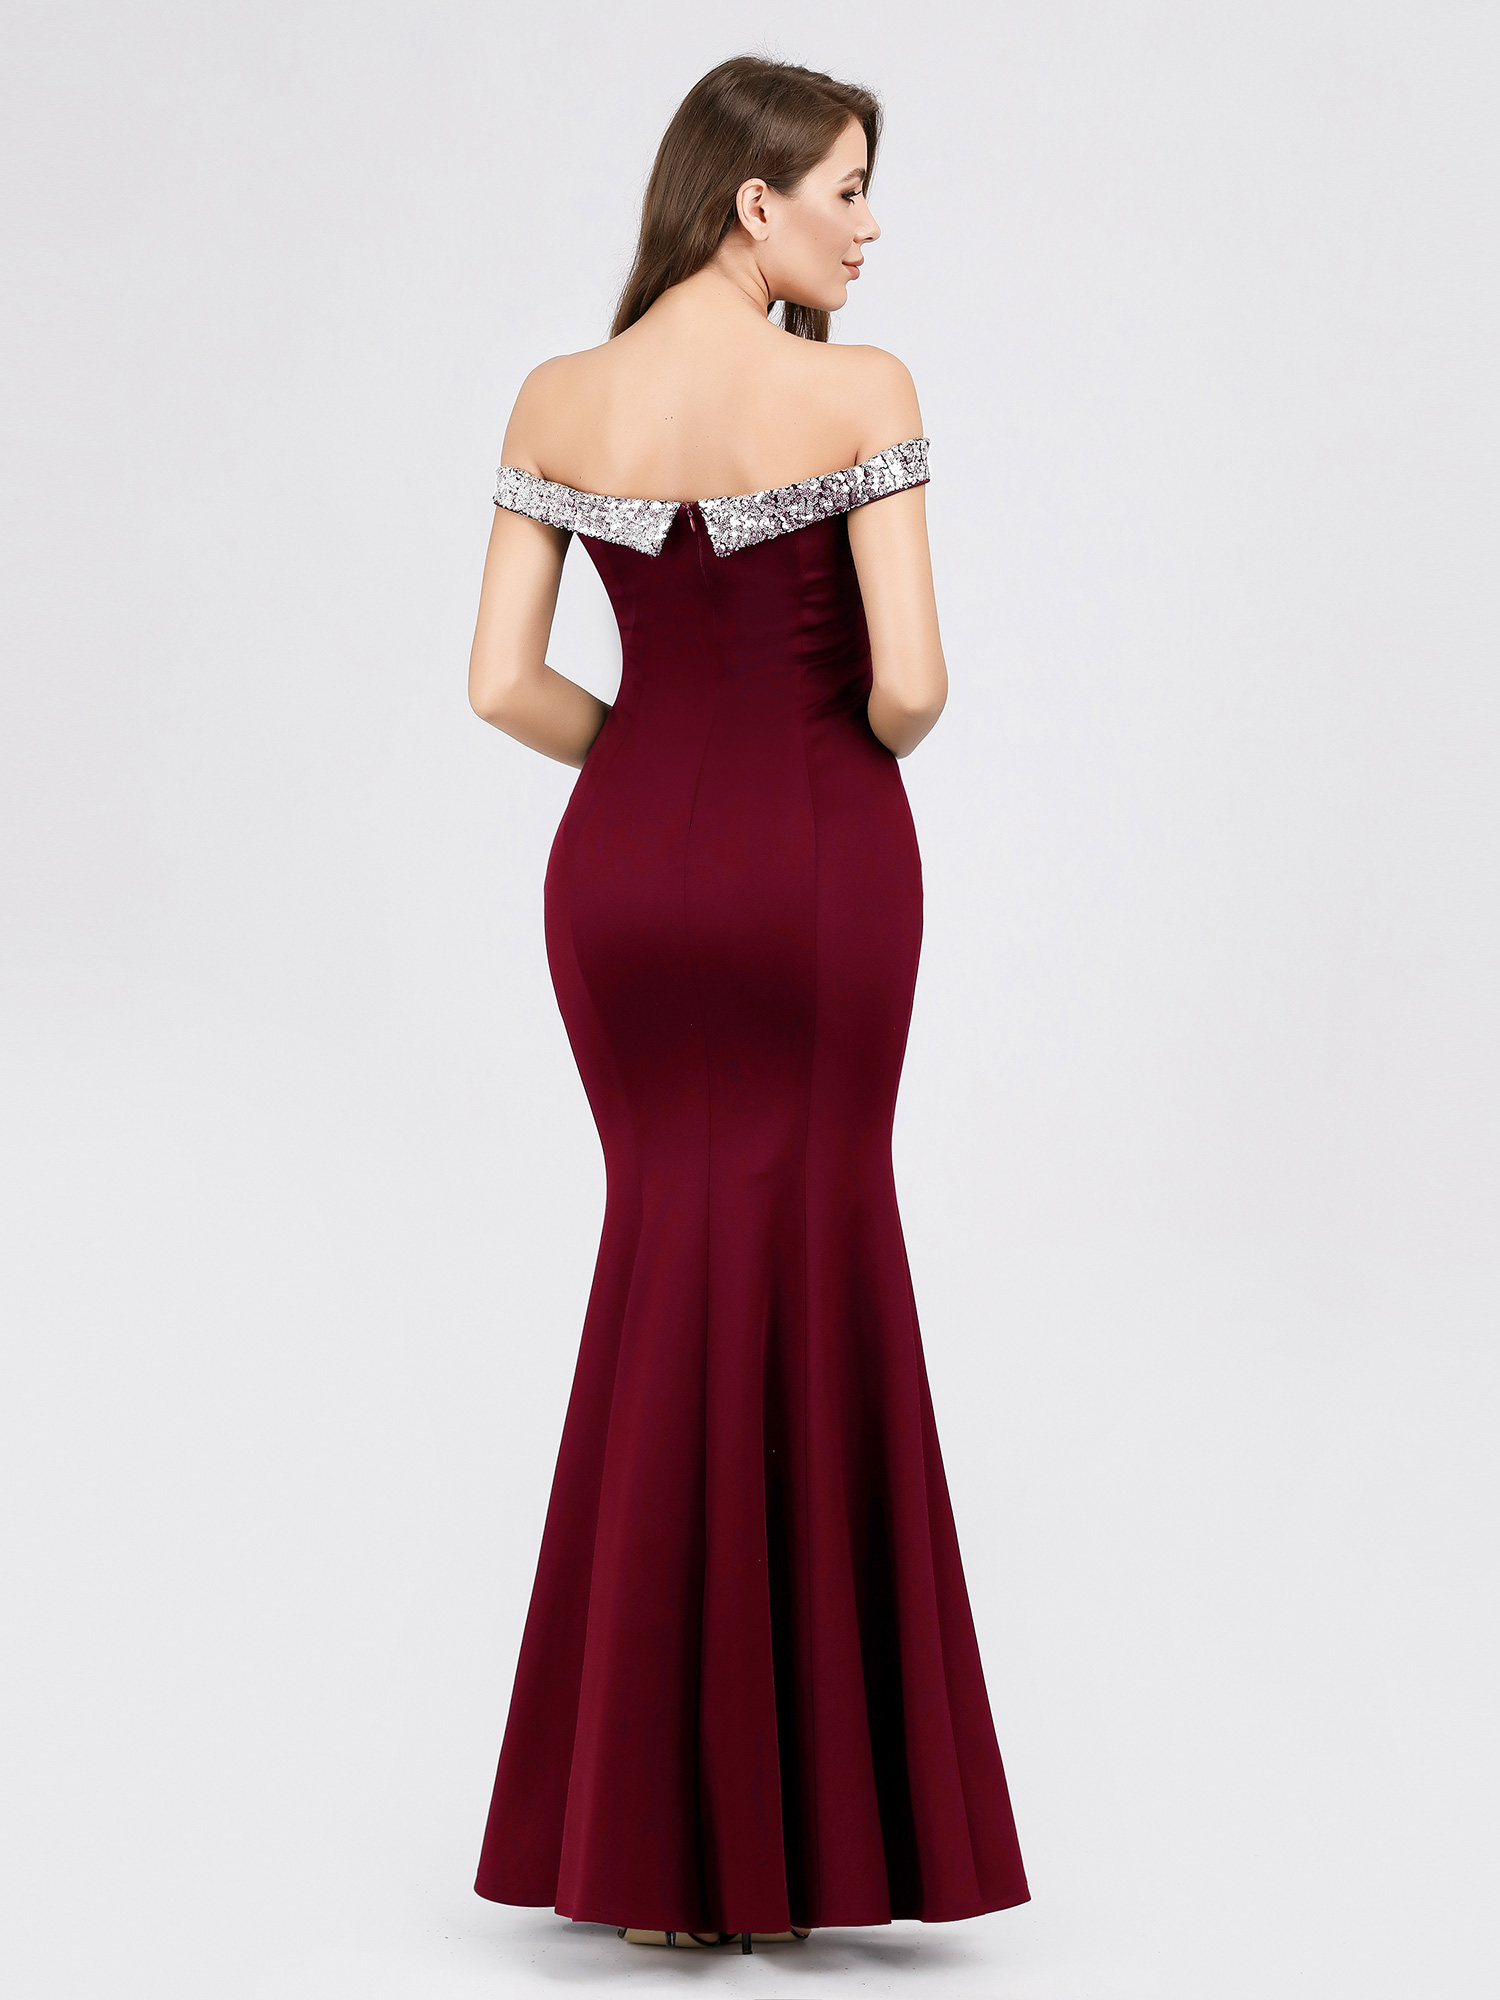 Ever-Pretty-US-Off-Shoulder-Sequins-Long-Evening-Dress-Mermaid-Wedding-Gown-7941 thumbnail 8